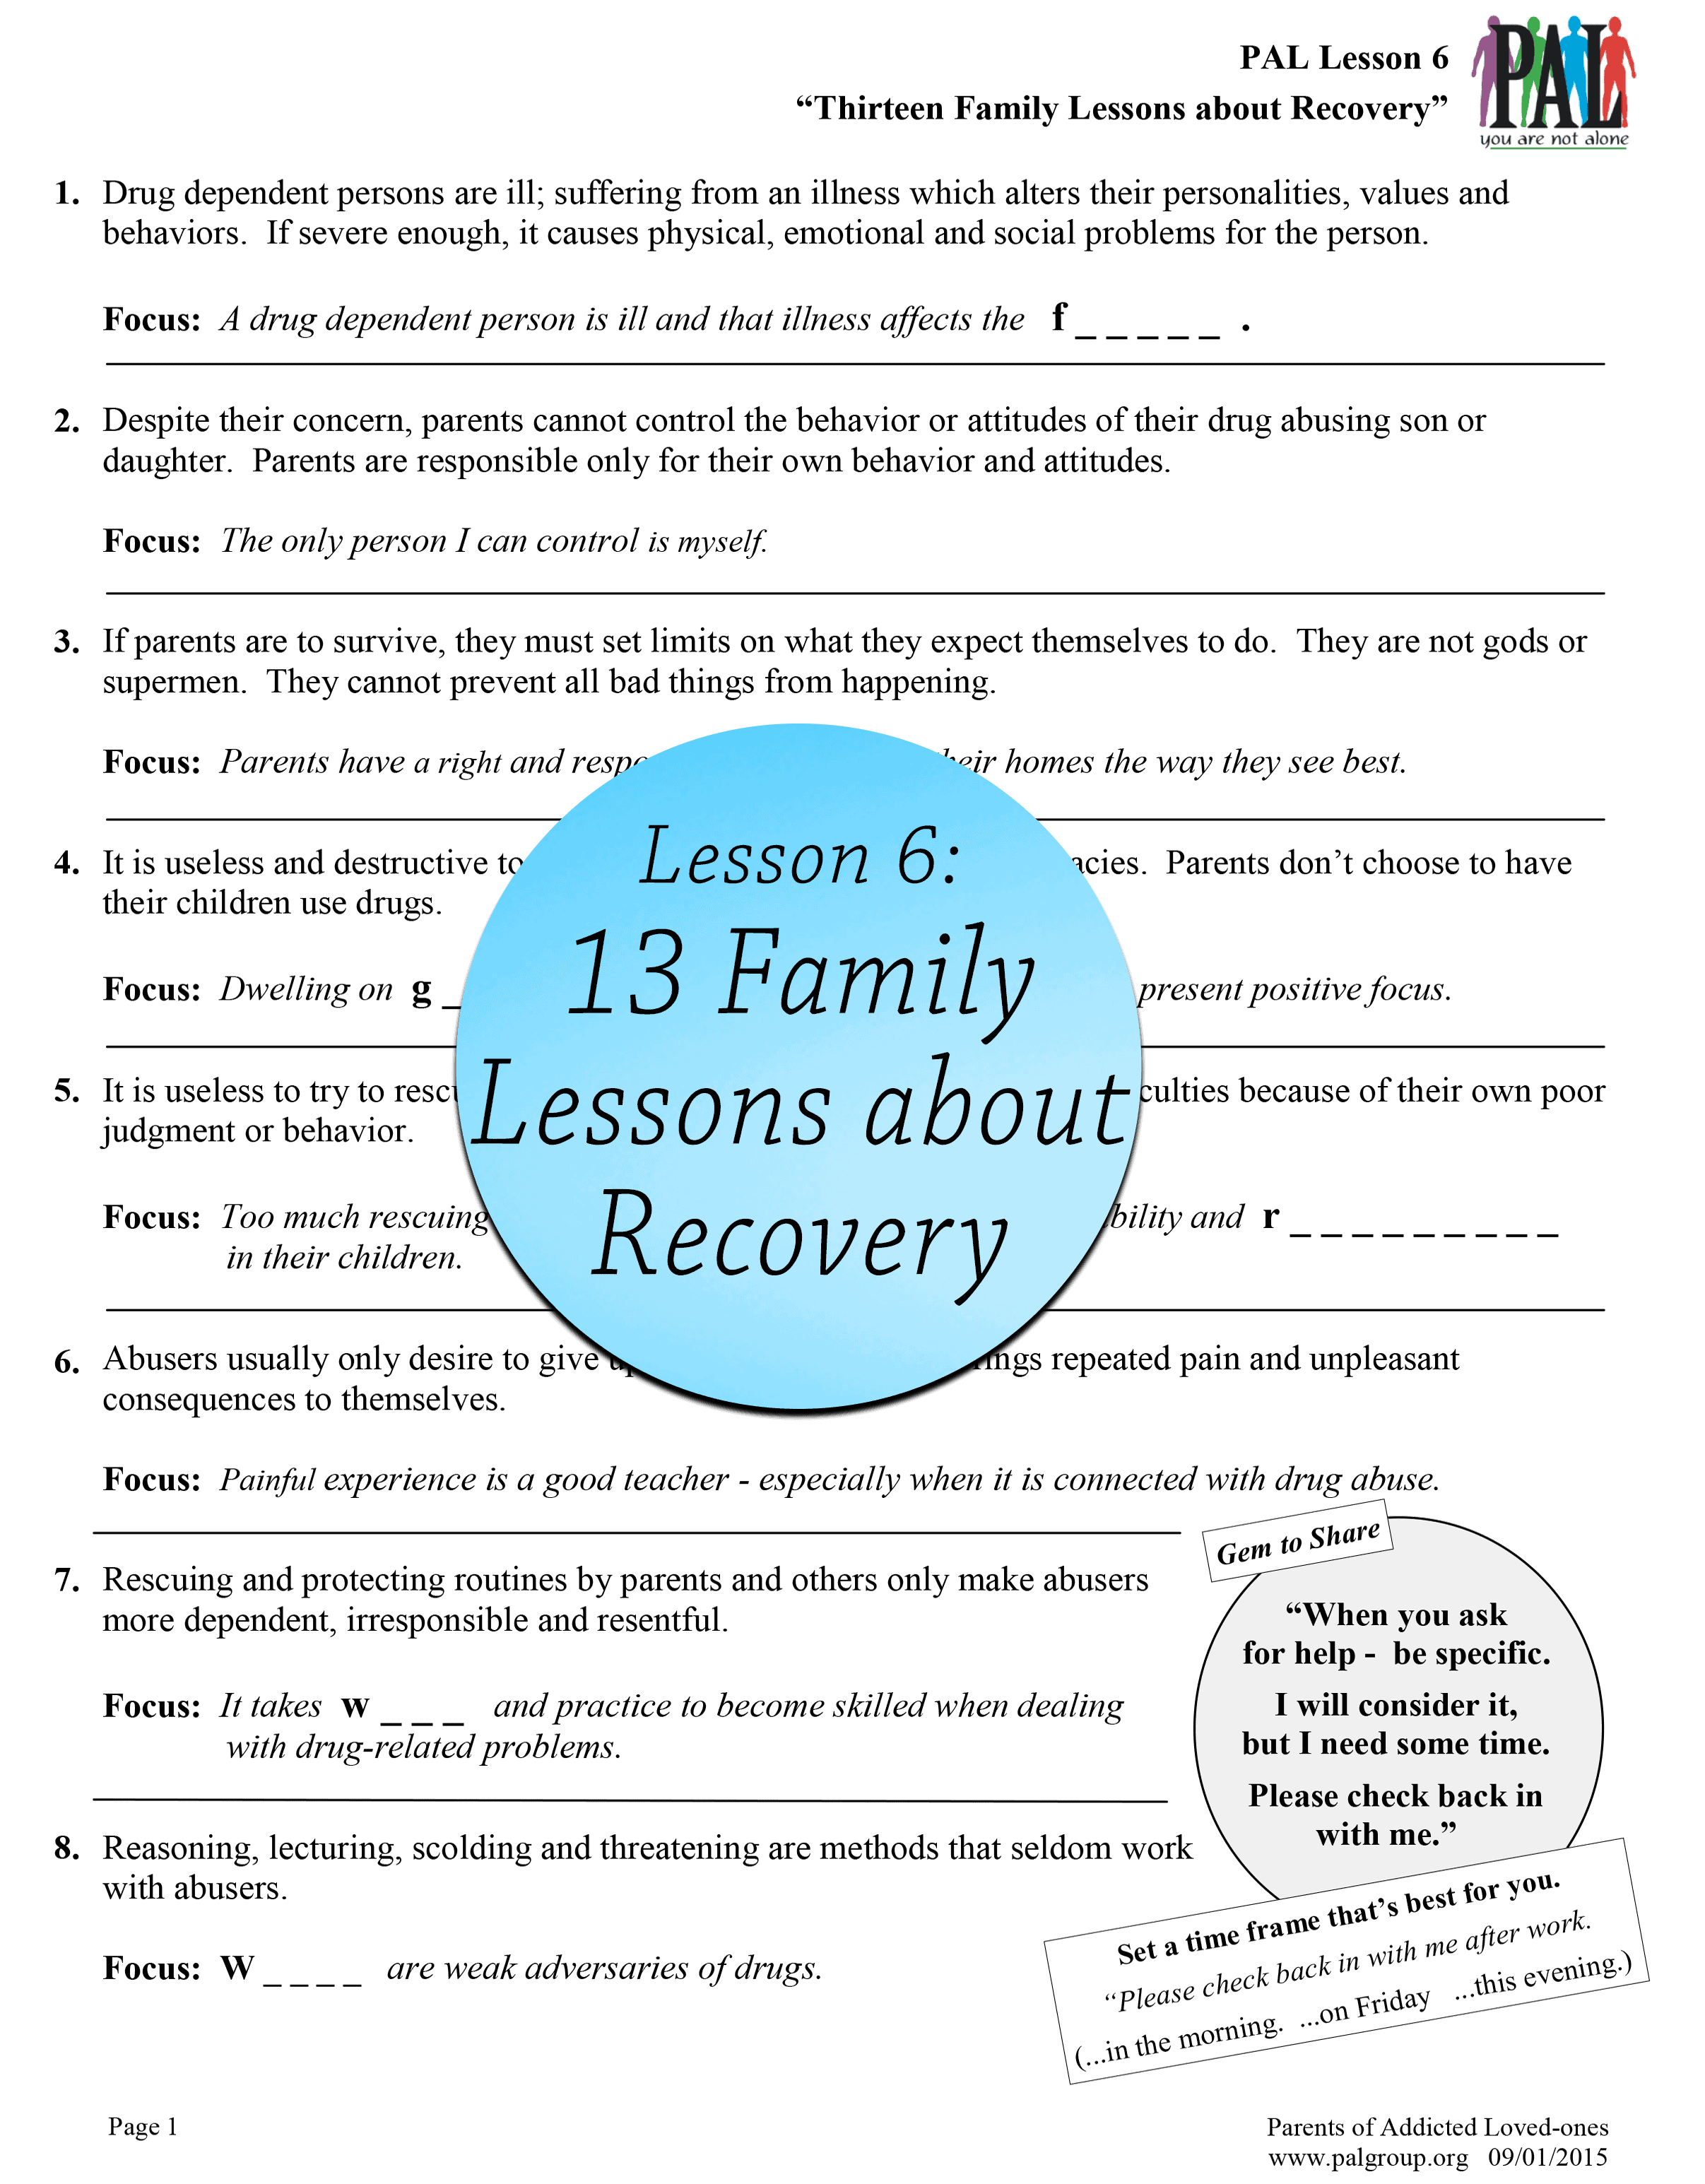 Lesson 6: 13 Family Lessons about Recovery